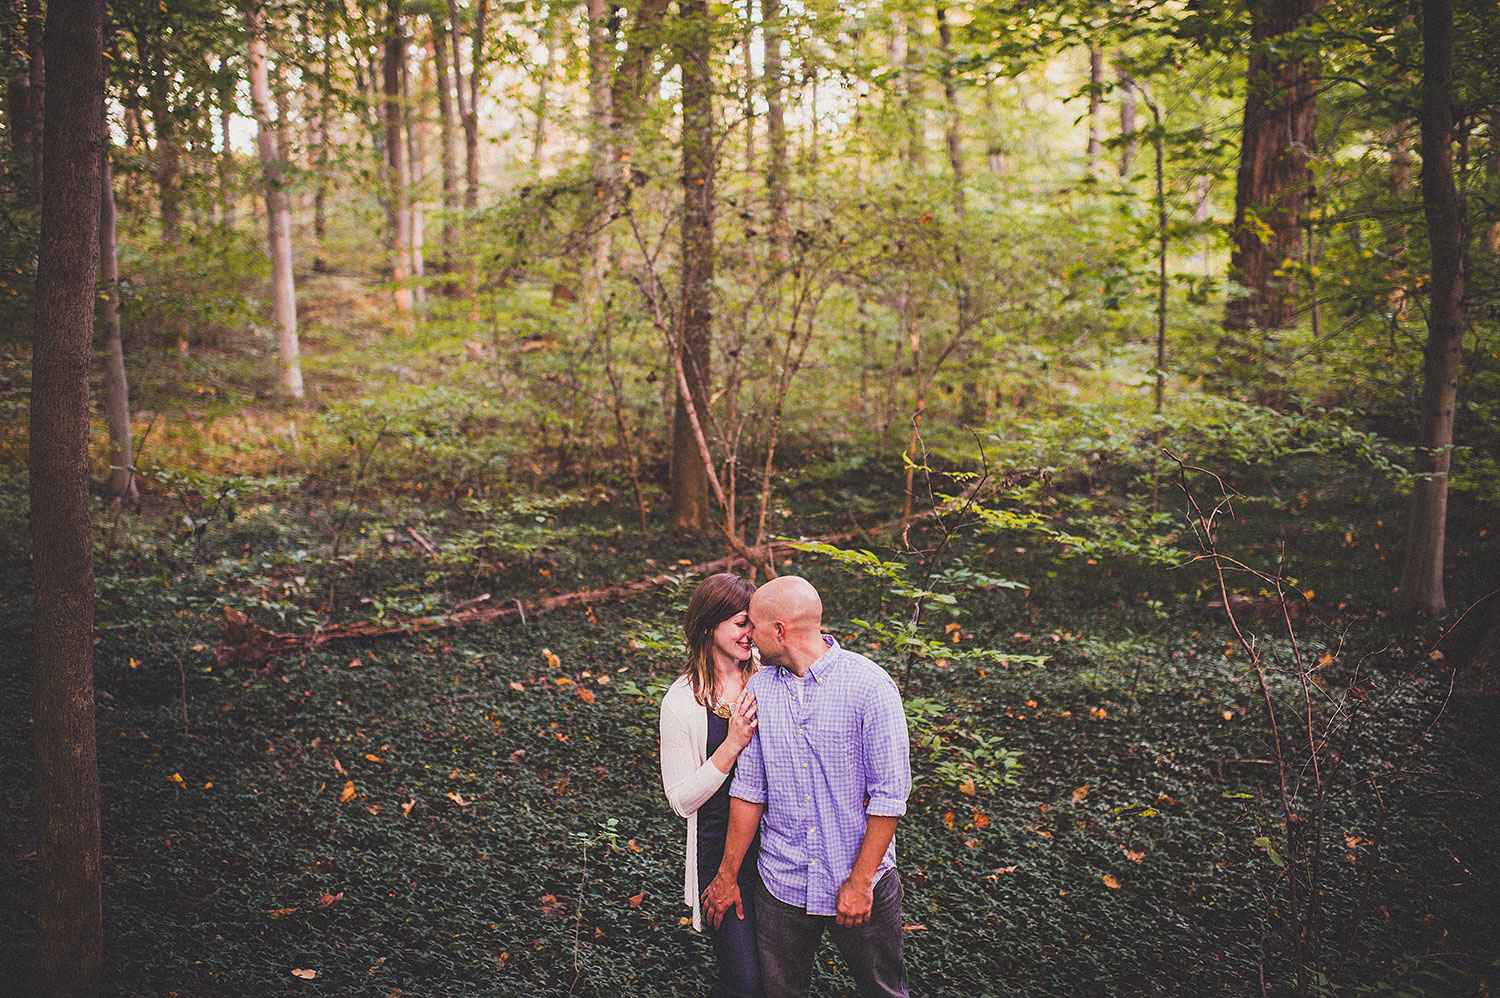 pat-robinson-photography-wilmington-engagement-session-12-2.jpg